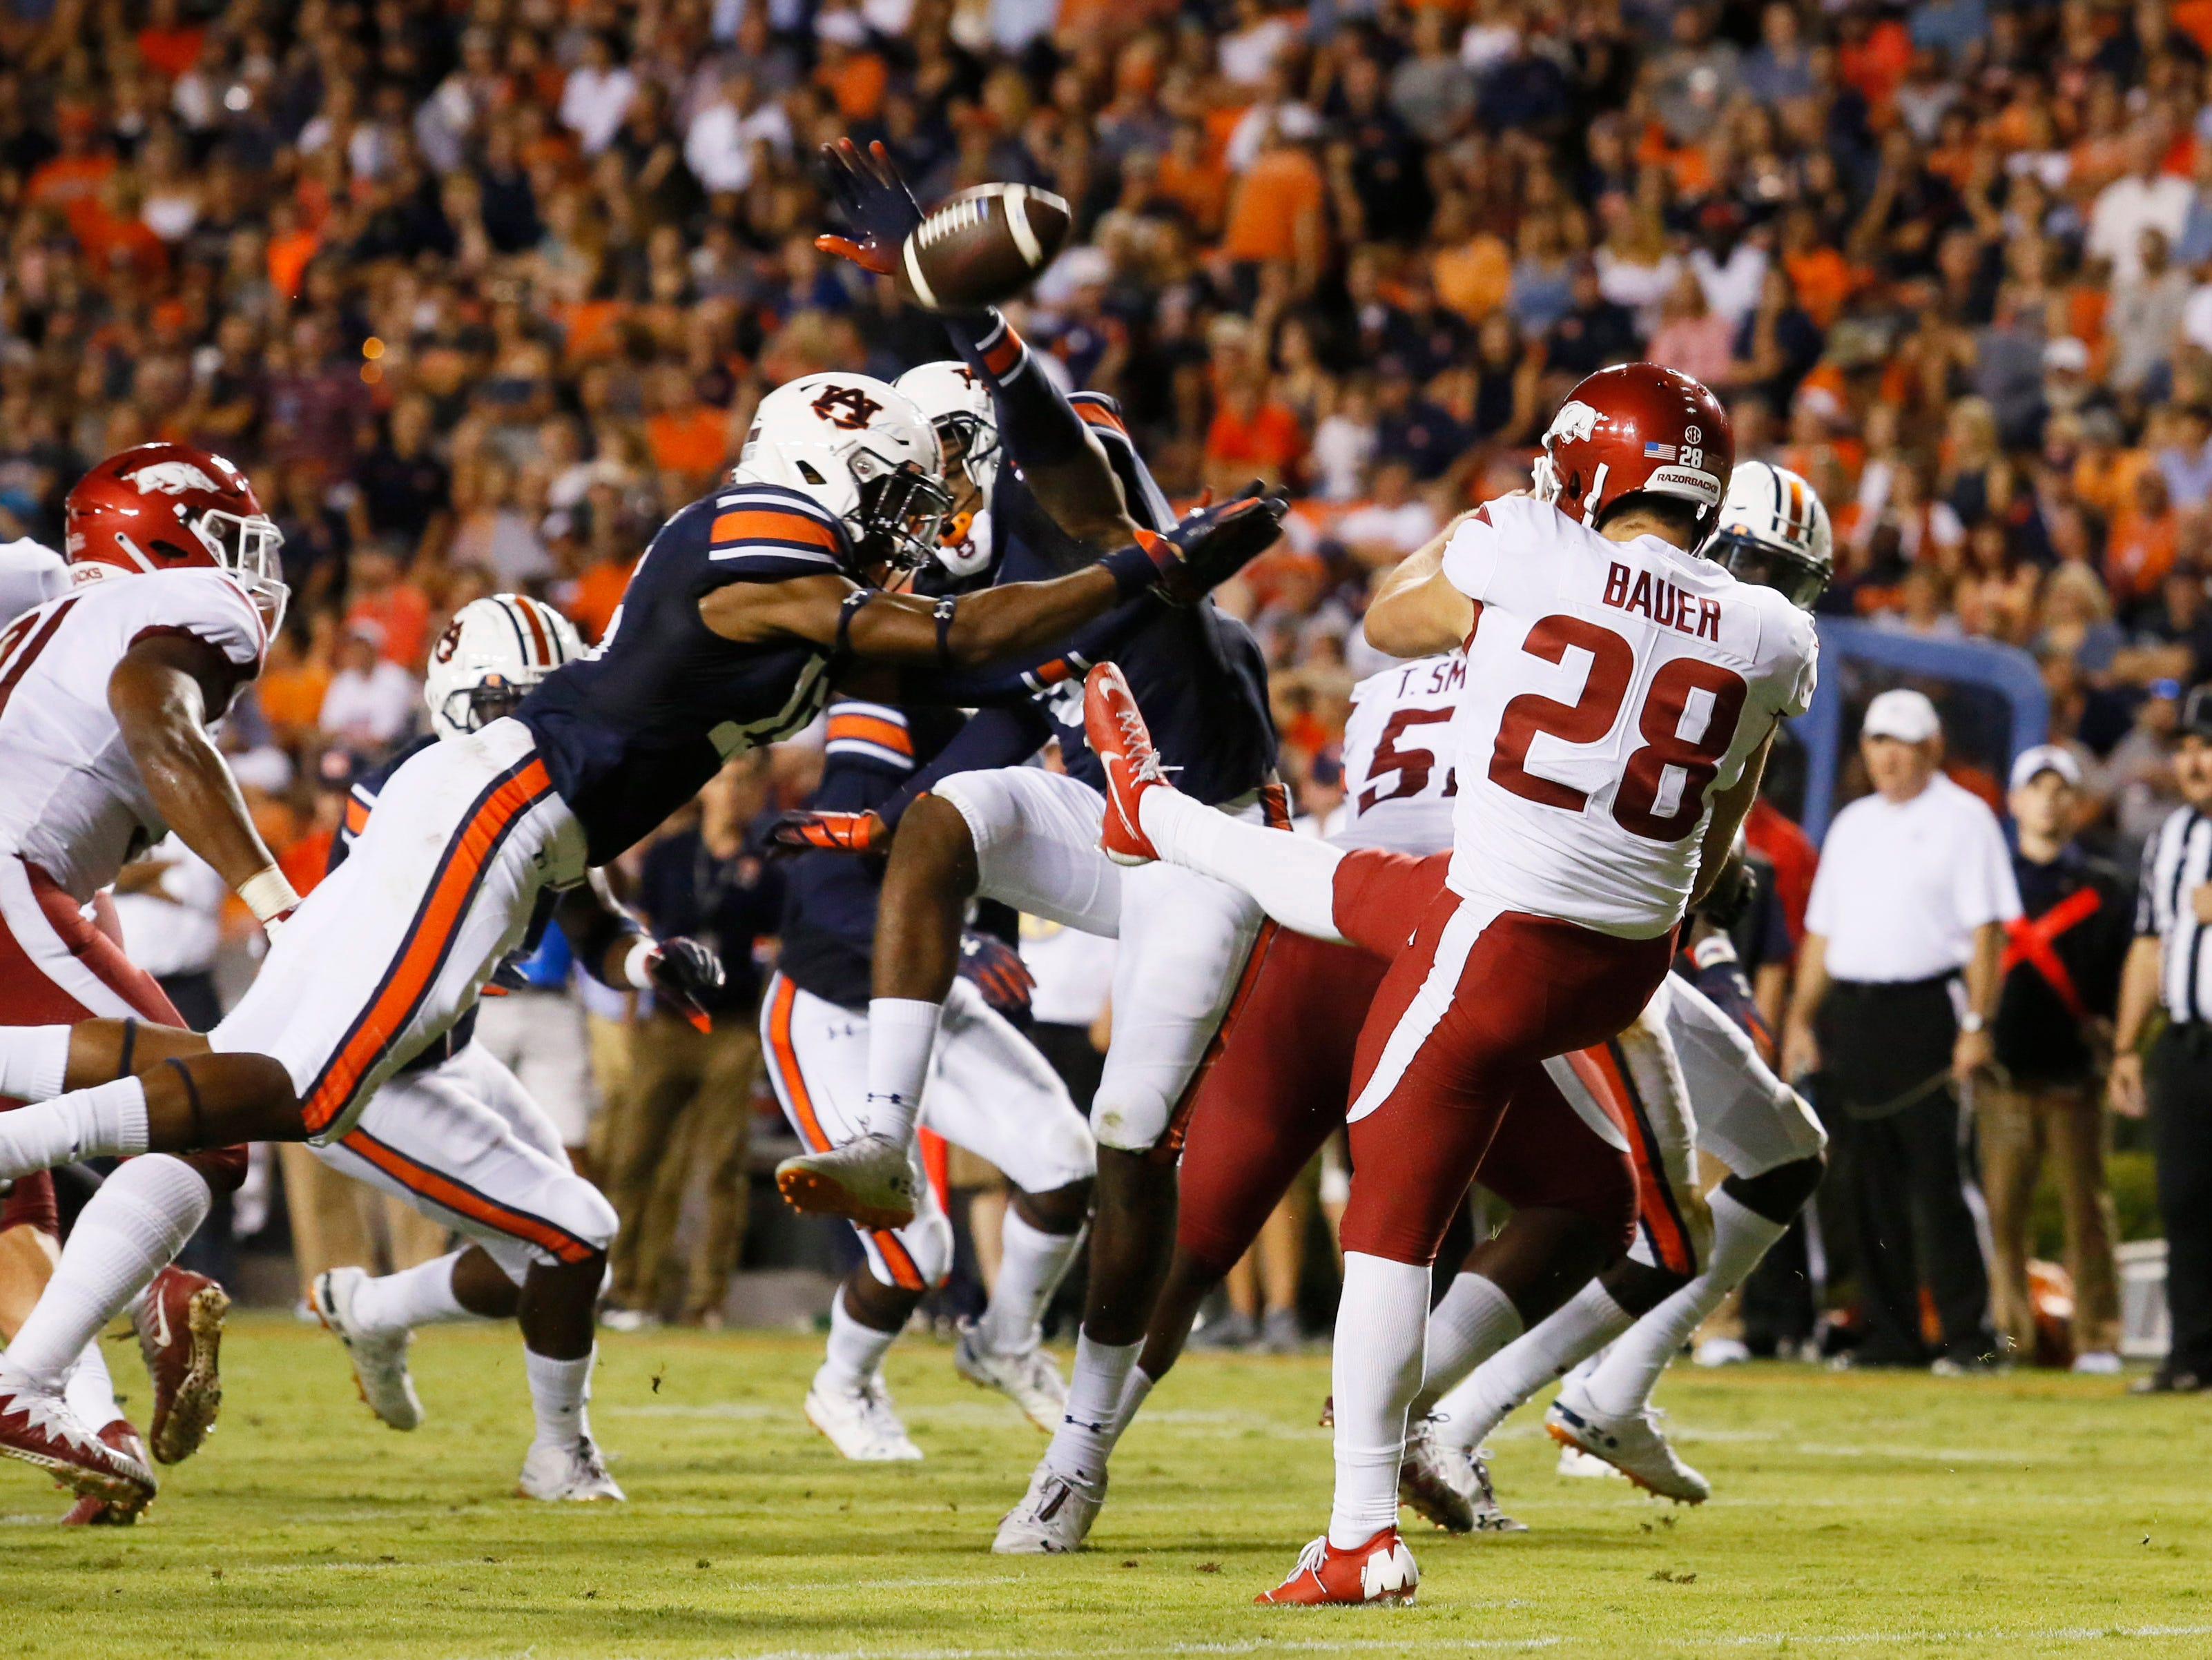 Arkansas Razorbacks punter Reid Bauer (28) has his punt blocked by Auburn Tigers Jordyn Peters (15) and Jamien Sherwood (9) during the second quarter at Jordan-Hare Stadium.